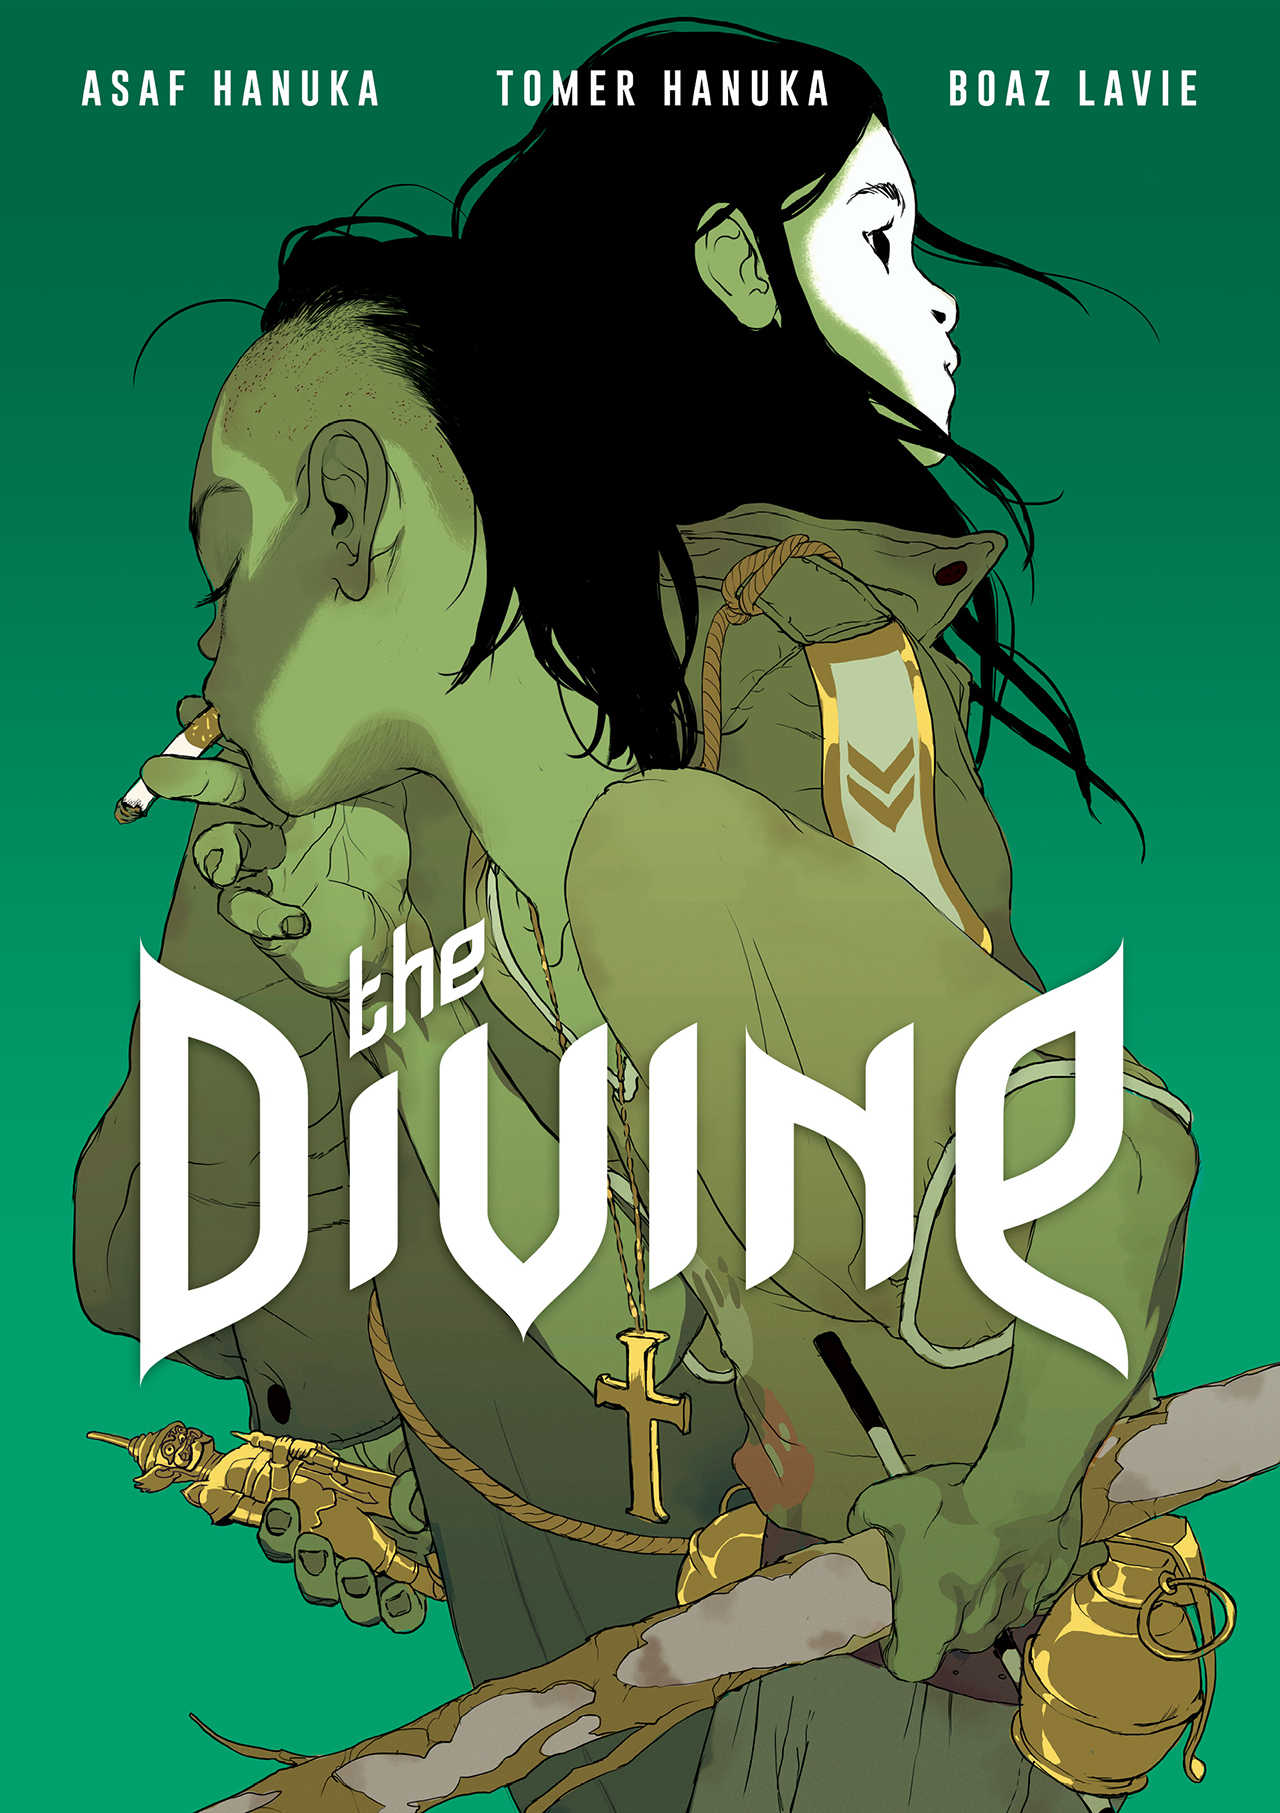 Asaf and Tomer Hanuka and Boaz Lavie's 'The Divine' (all images courtesy First Second Books)